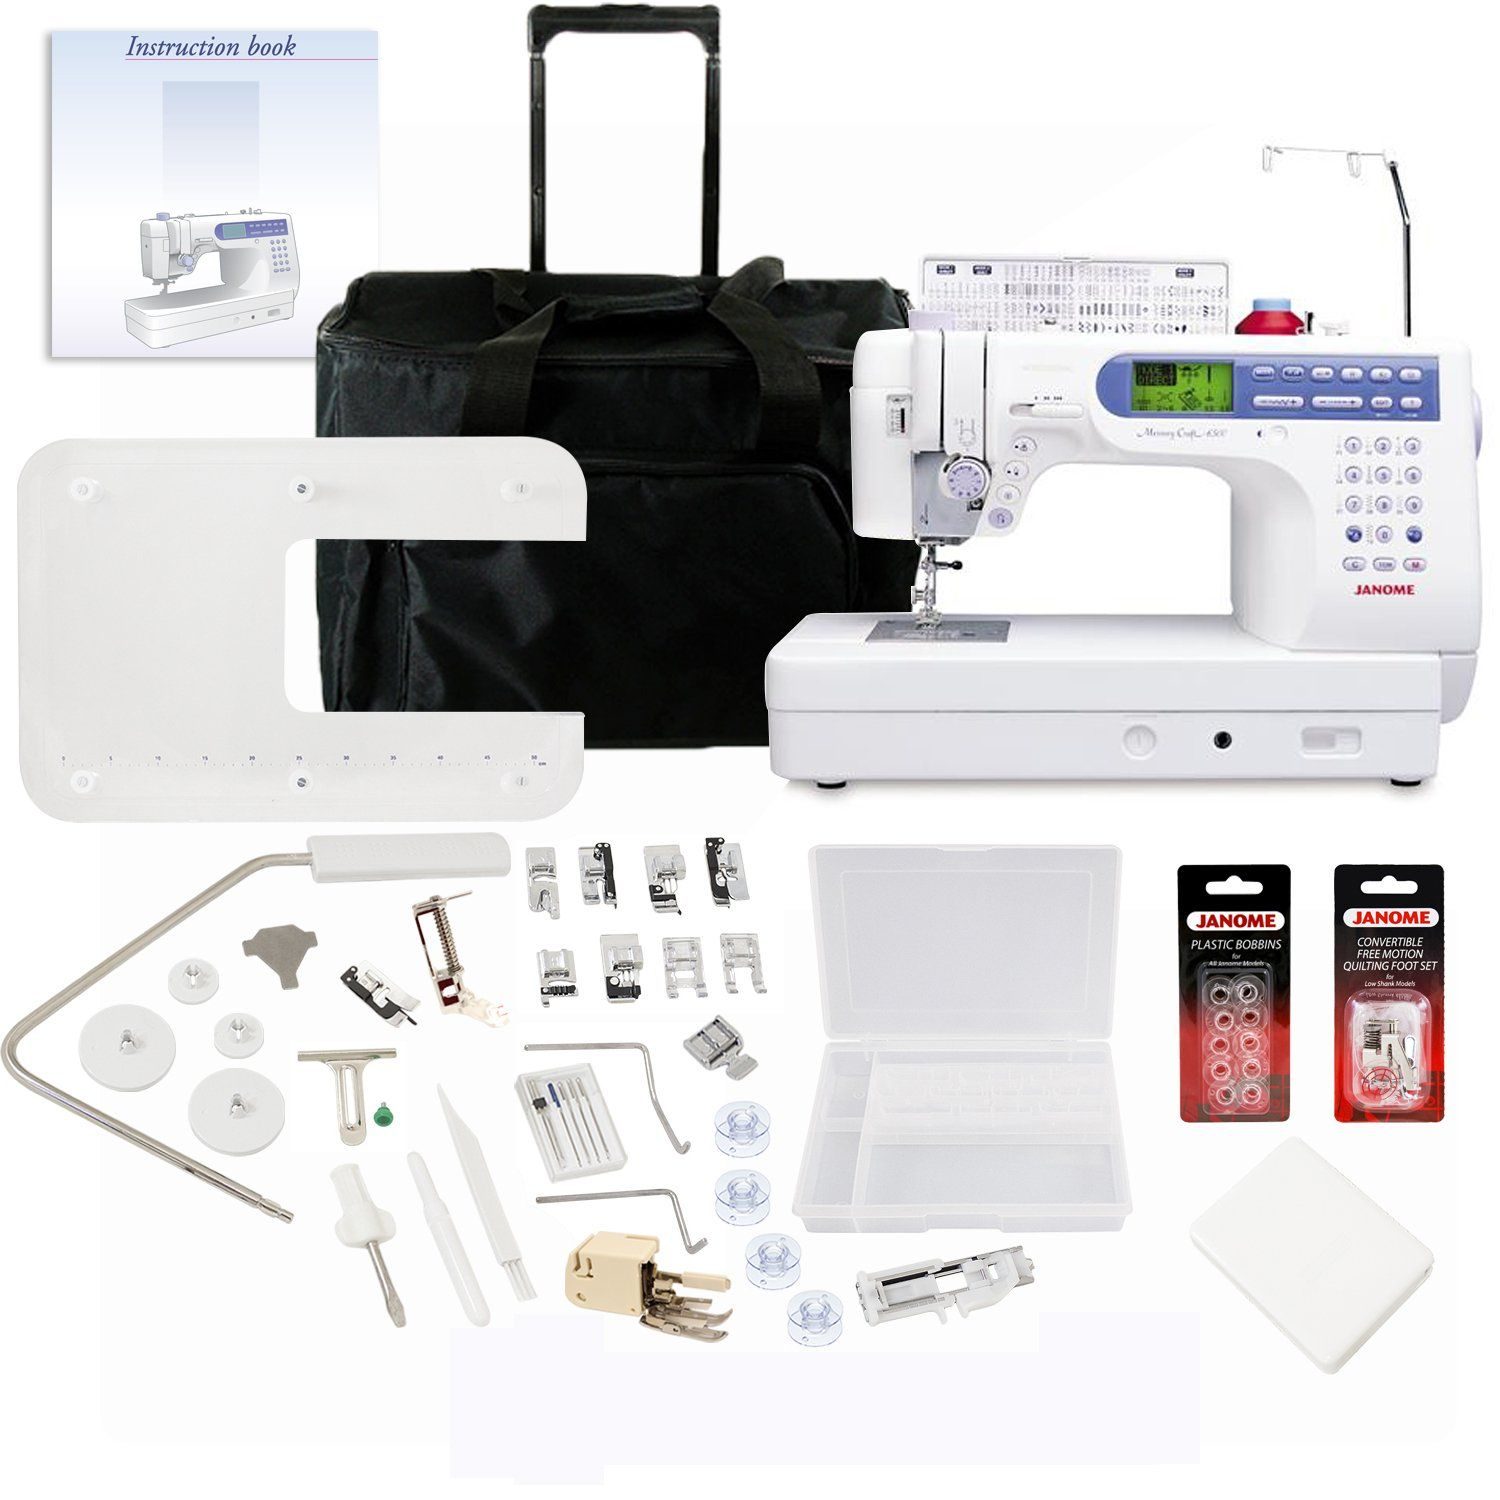 Janome memory craft 6500p - Janome Memory Craft 6500p Sewing Machine With Exclusive Bonus Bundle Bonus Bundle Includes Rolling